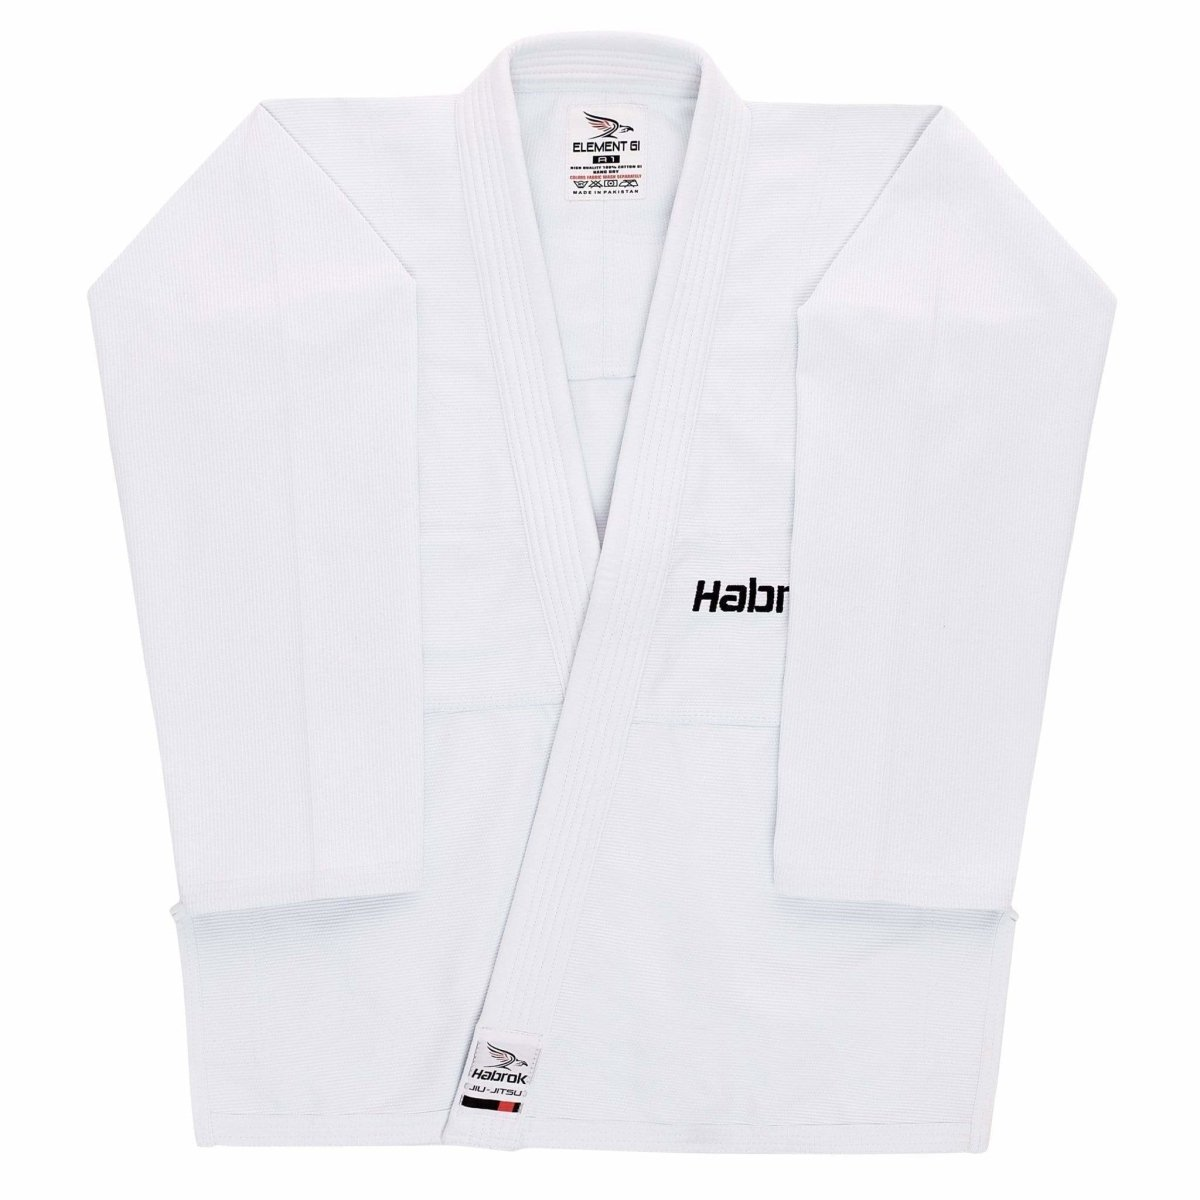 Habrok Jiu Jitsu Gi F0 / WHITE Element BJJ Gi | WOMEN| Ultra Light Weight | Jiu Jitsu GI Habrok | Element | BJJ Gi Women | Ultra Light Weight